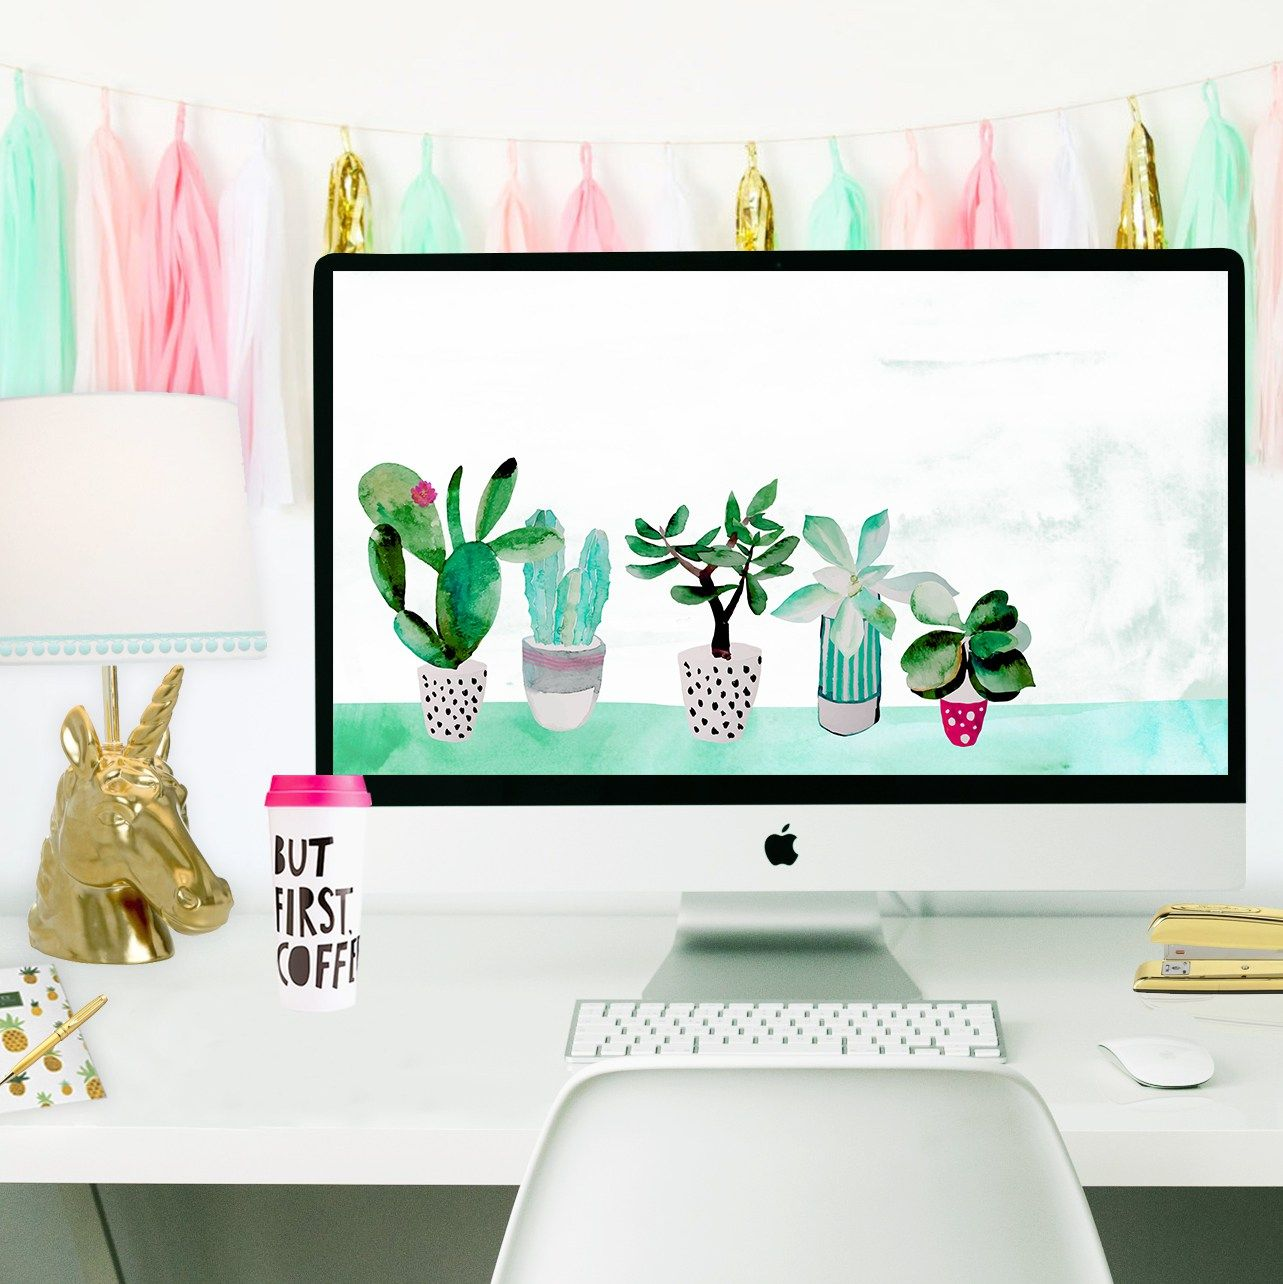 Free Succulent Desktop Wallpaper To Pretty Up Your Desk Space Desktop Wallpaper Calendar Macbook Desktop Desktop Wallpaper